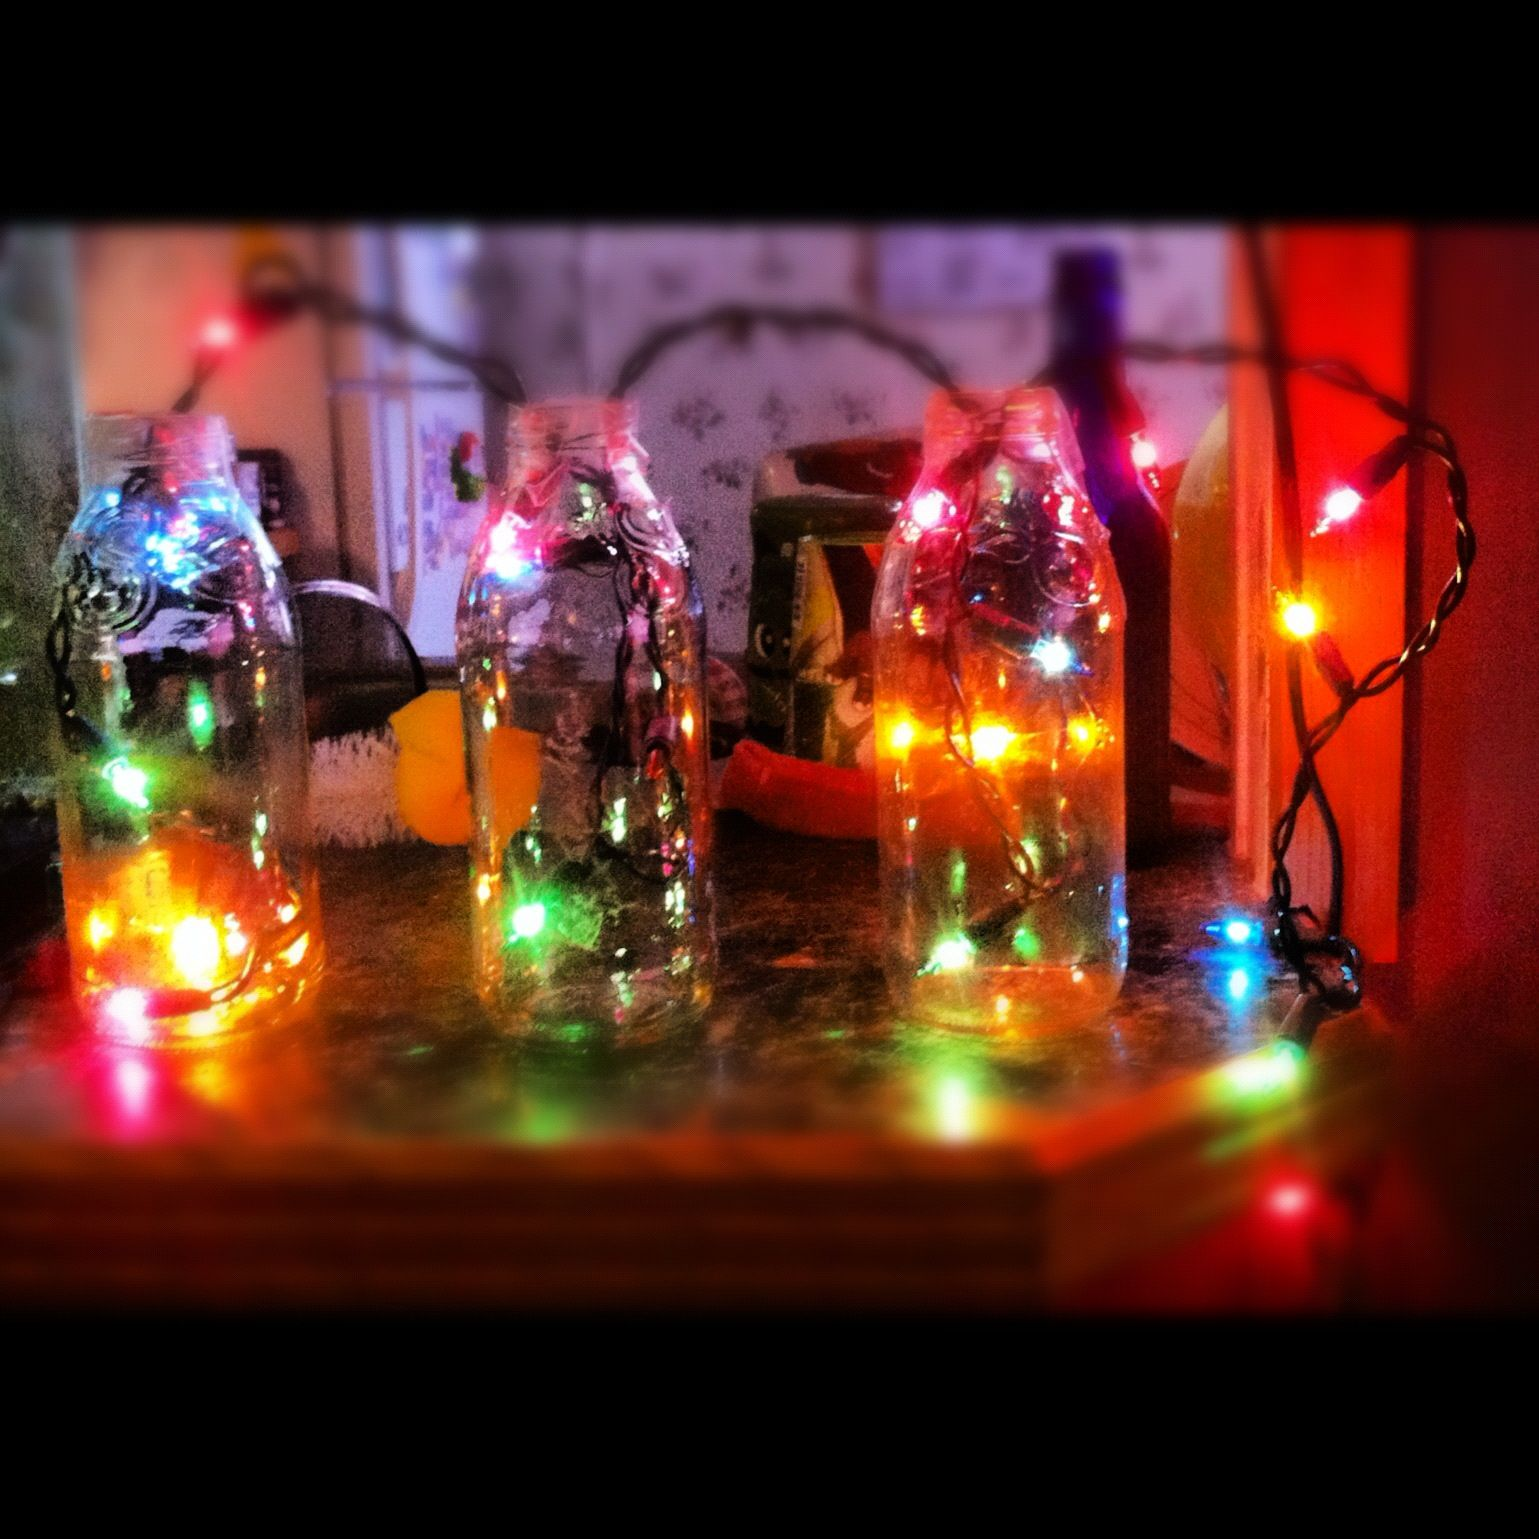 Took Snapple Bottles Cleaned Them Out And Put Christmas Lights In Them Snapple Bottle Crafts Bottle Crafts Wine Bottle Crafts